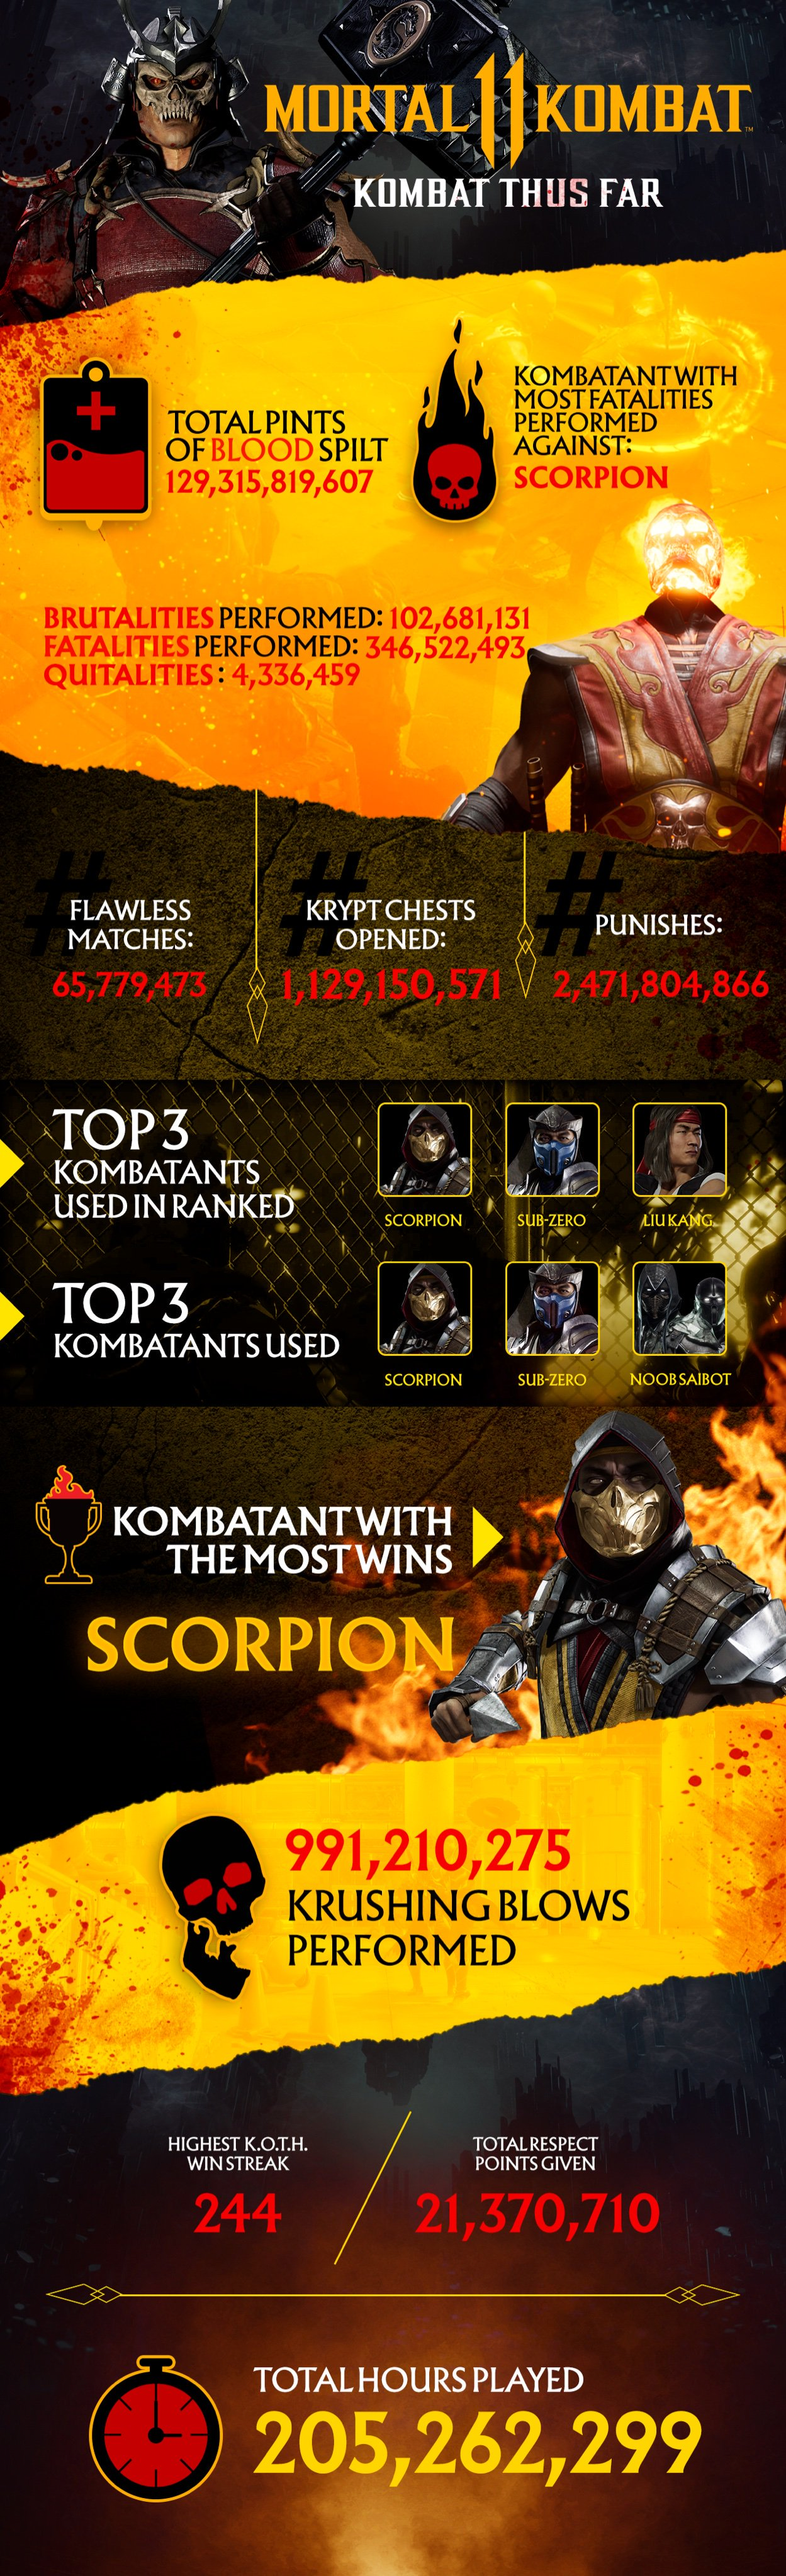 Mortal Kombat 11 stats 1 out of 1 image gallery